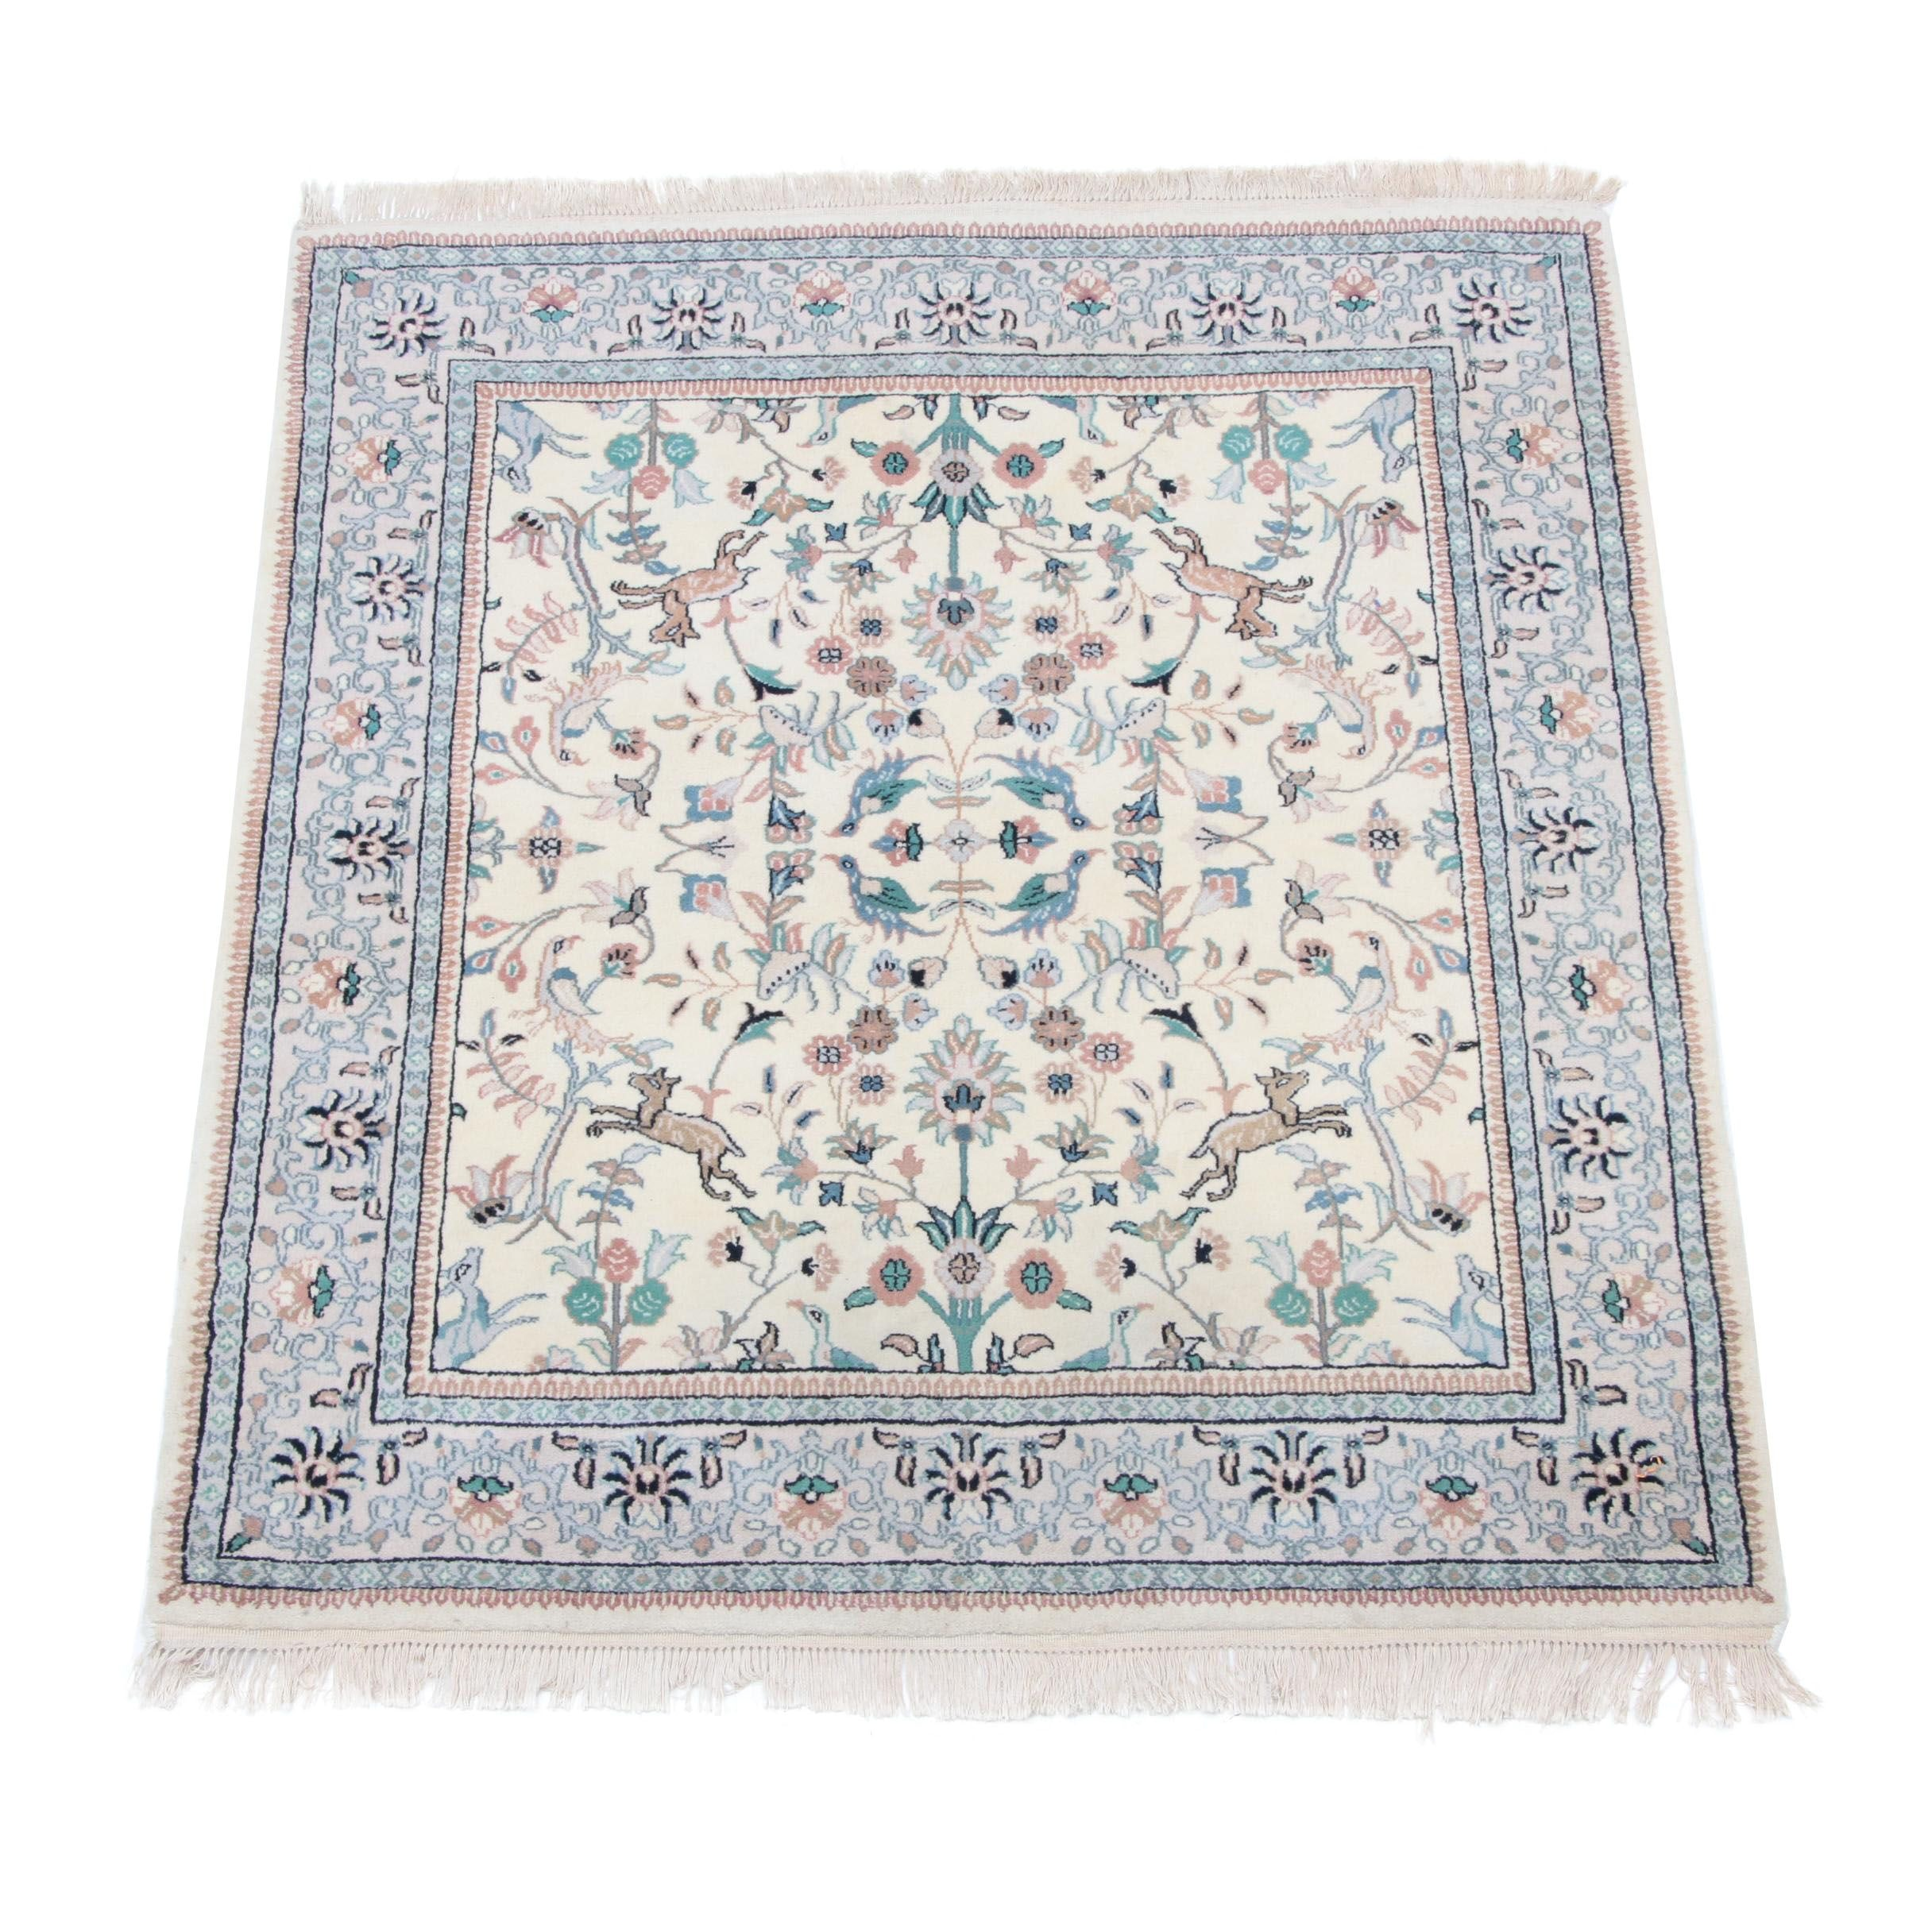 Hand-Knotted Indo-Persian Hunting Rug